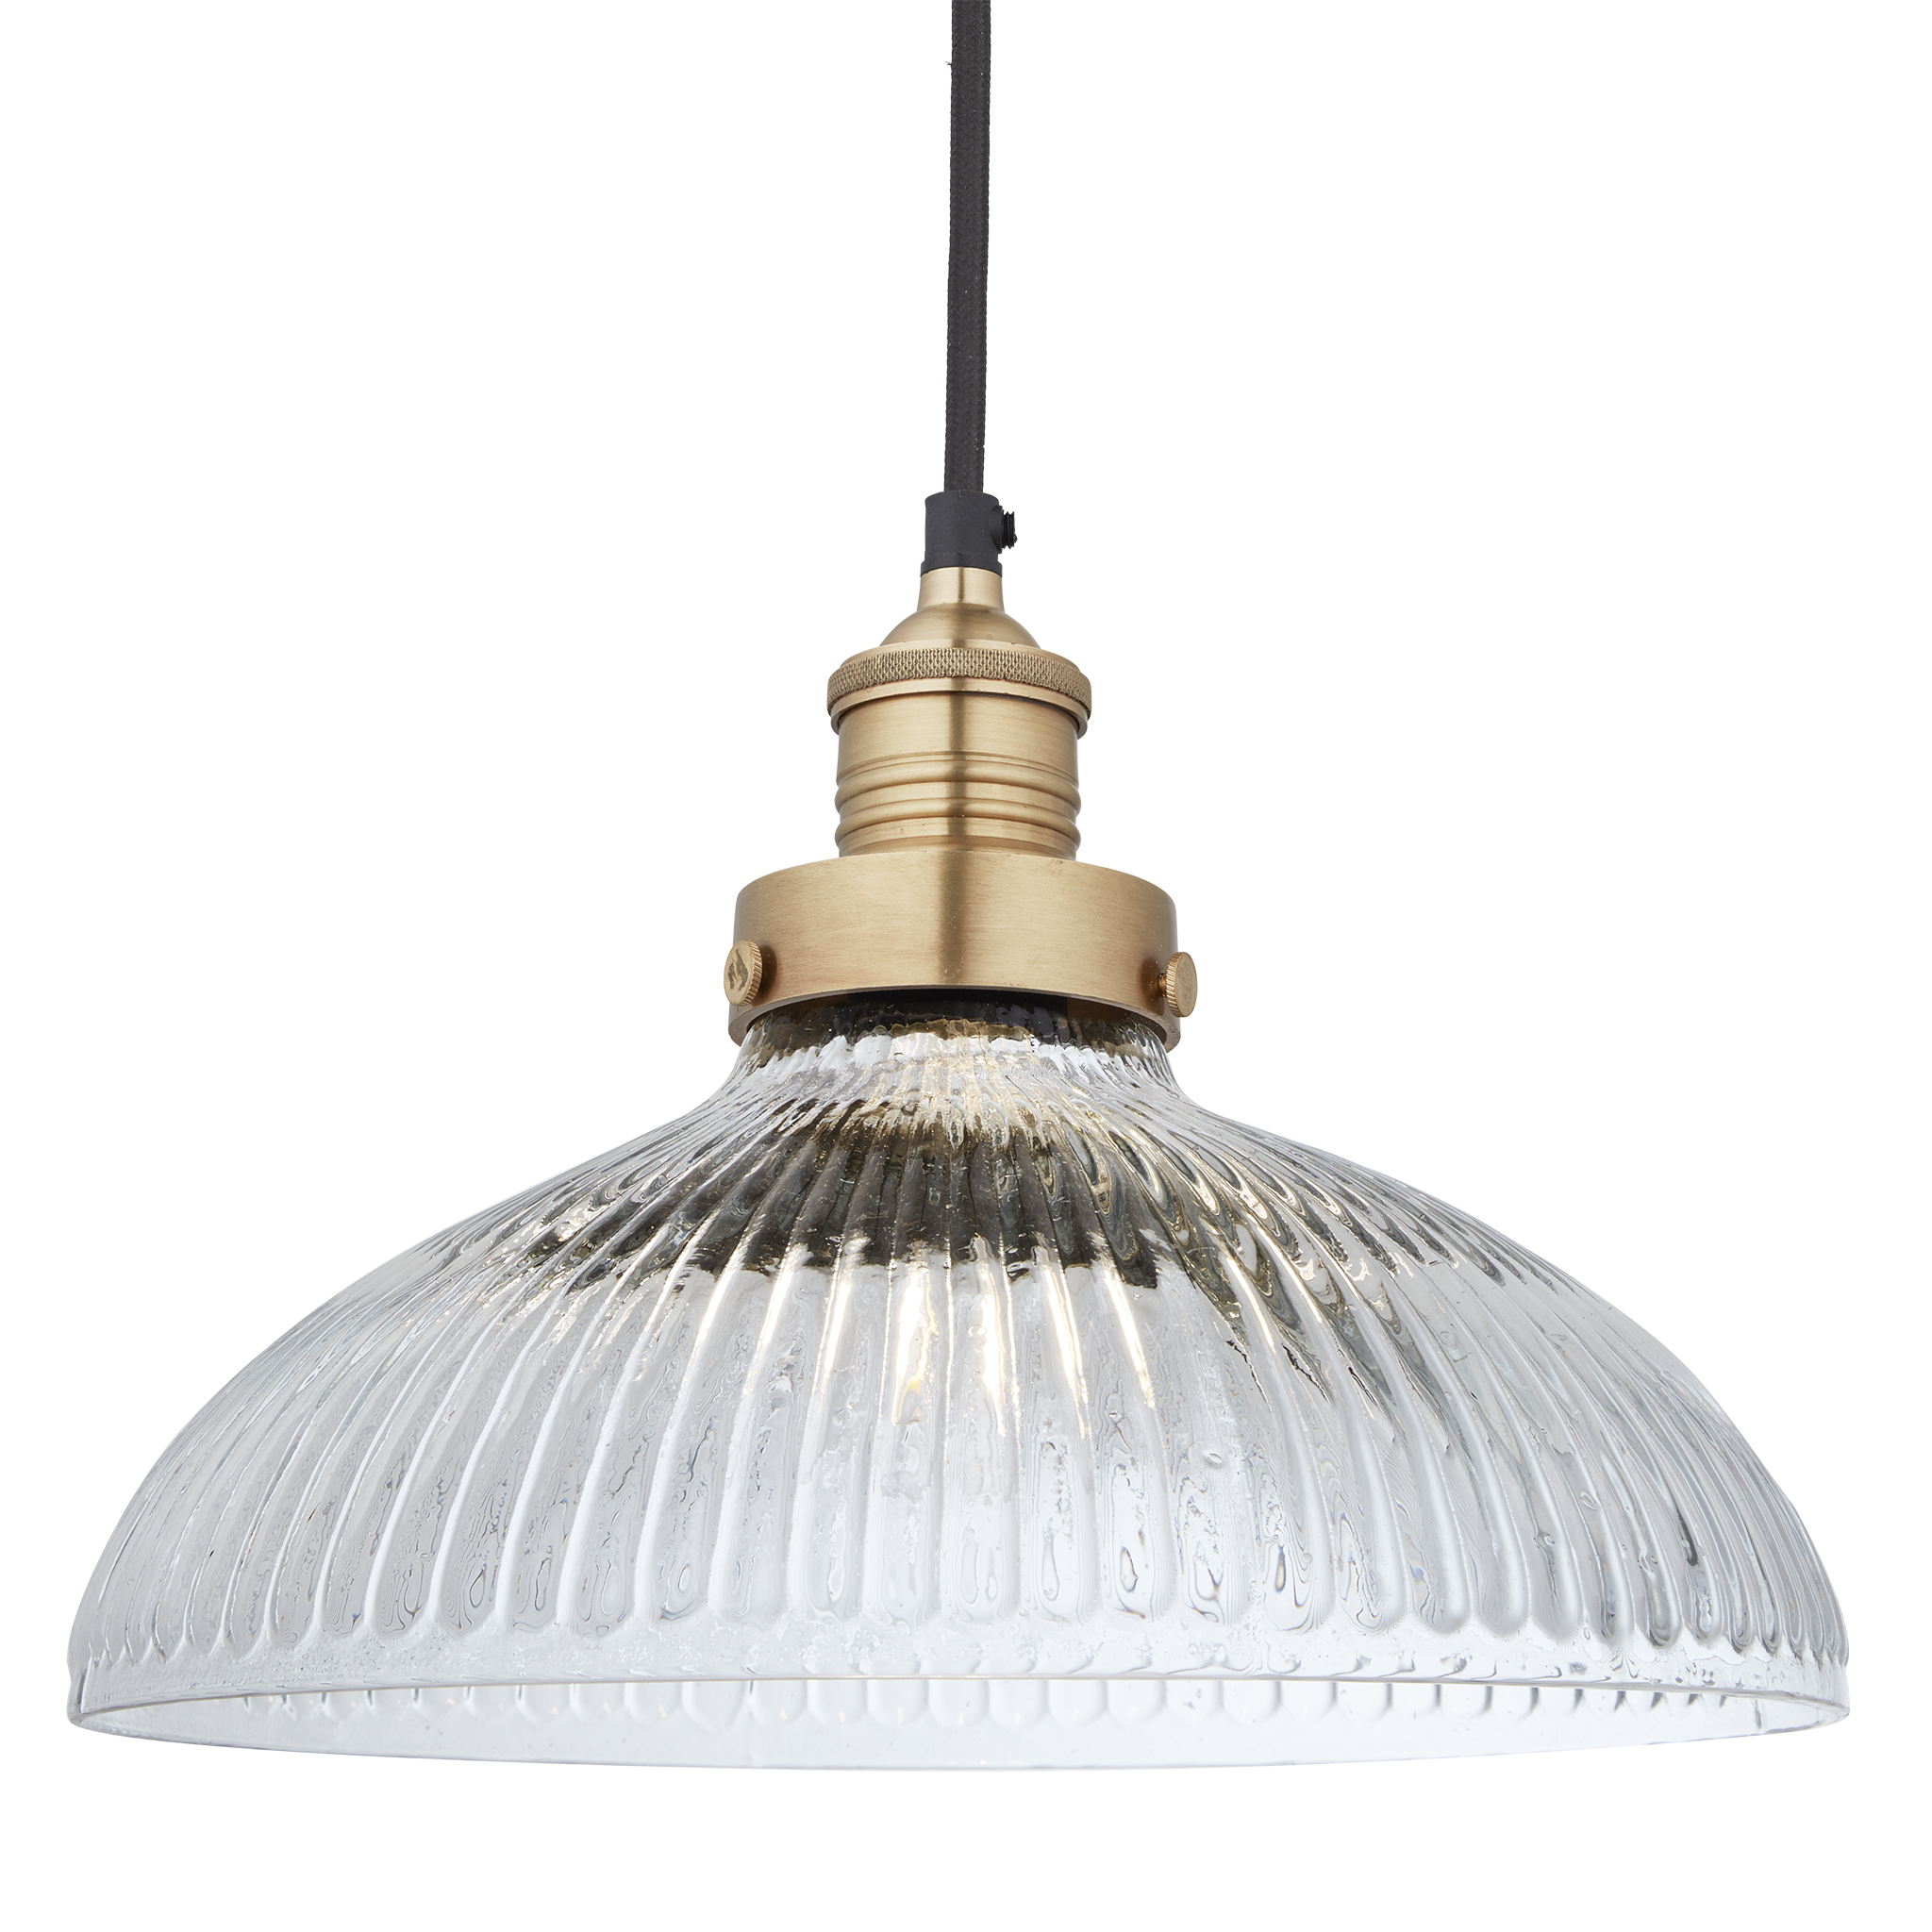 Brooklyn Glass Dome Pendant 12 Inch Dome Pendant Lighting Industrial Ceiling Lights Vintage Light Fixtures